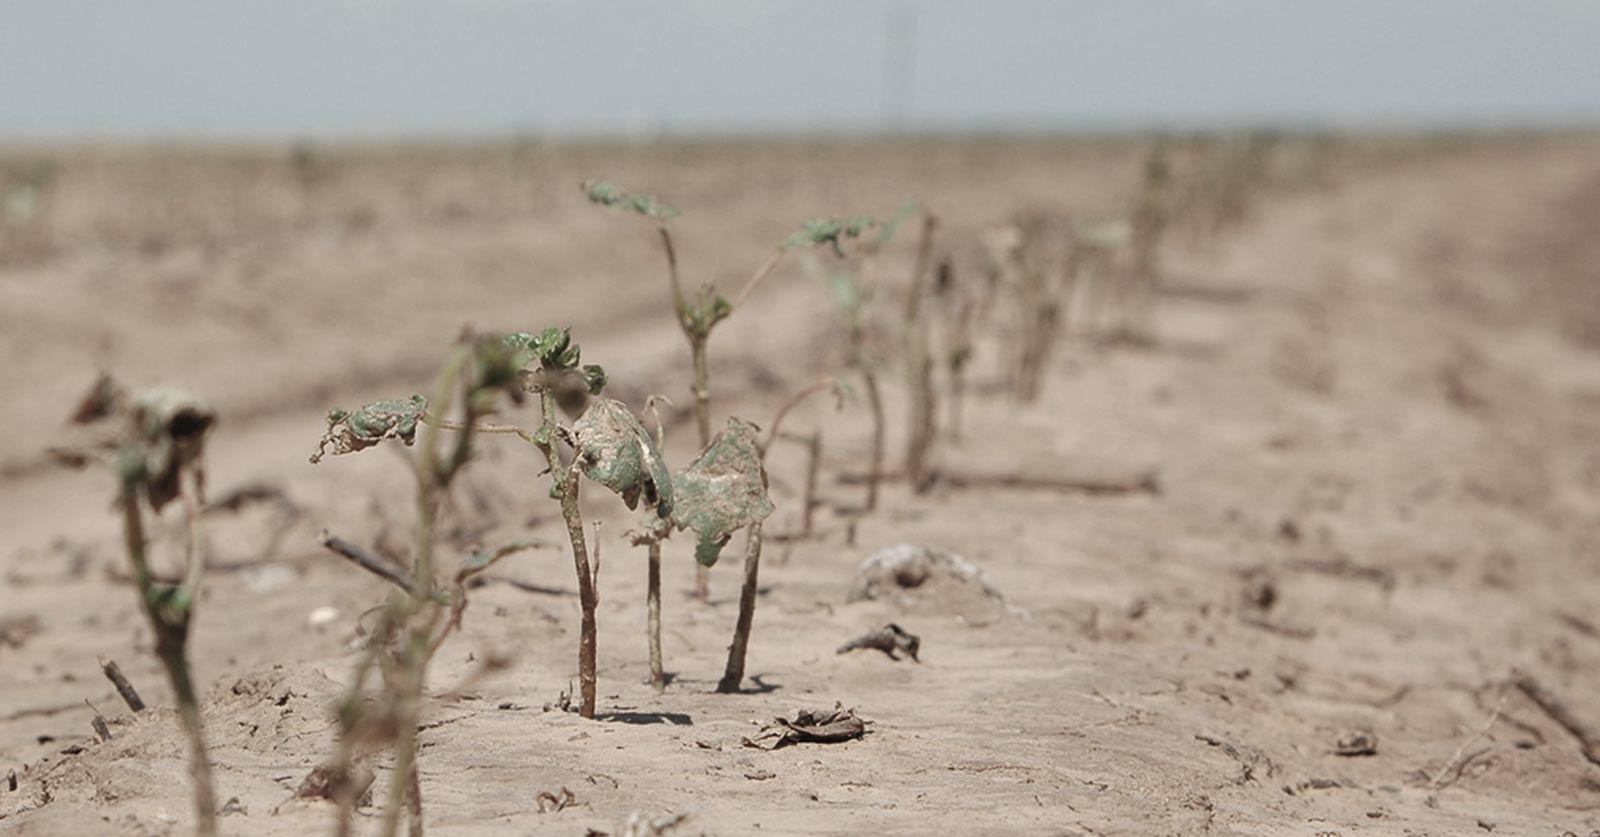 photo of wilted crops in barren soil